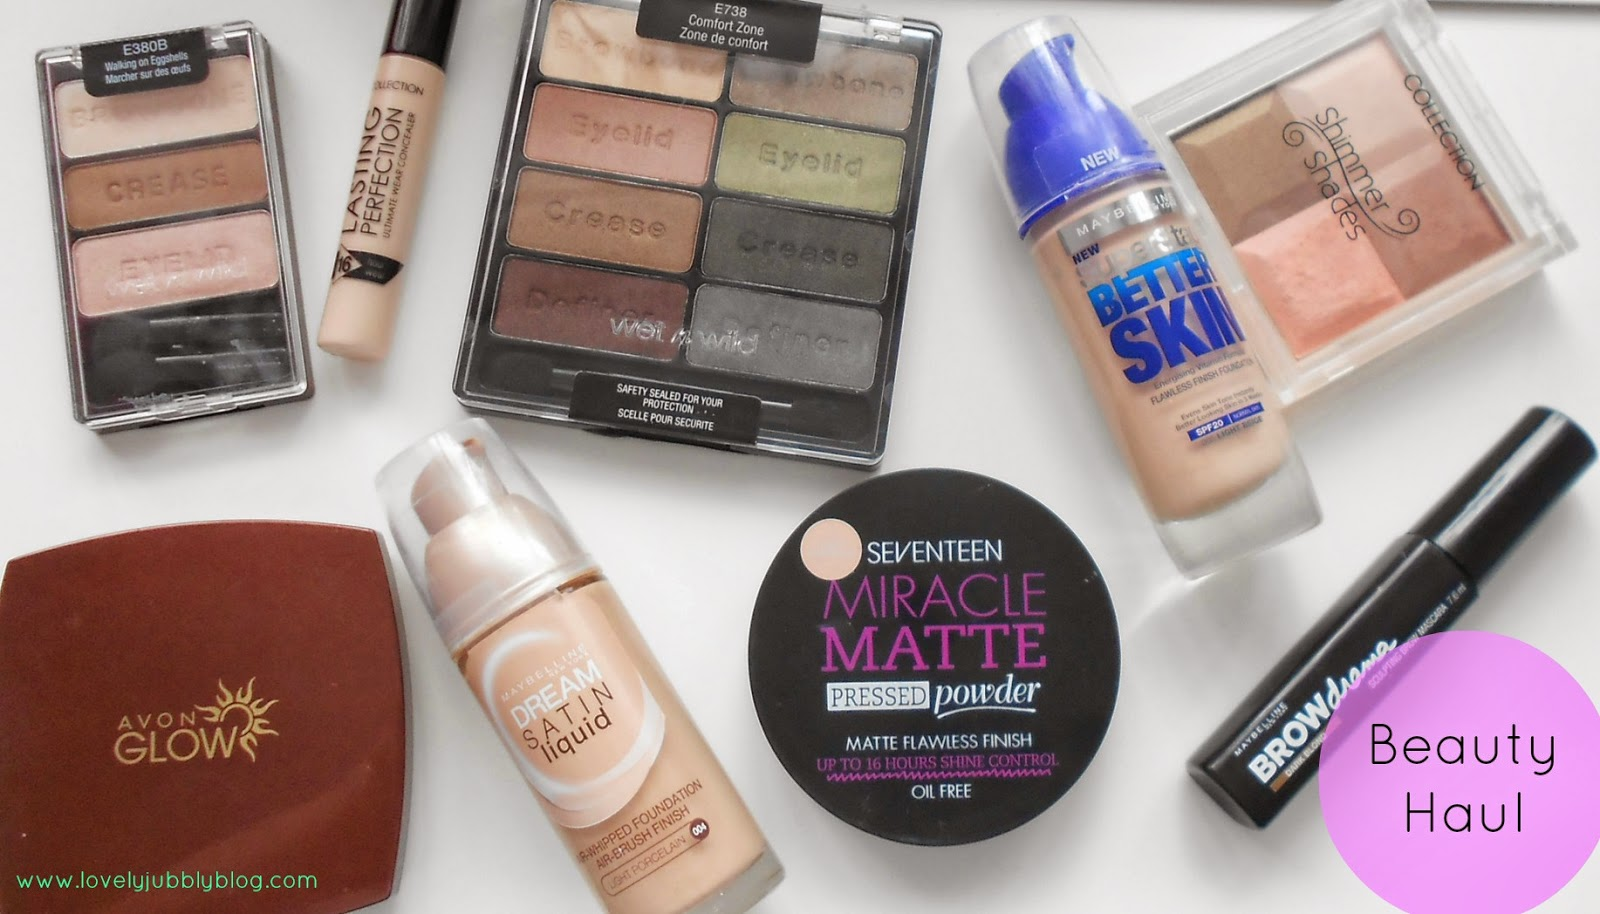 boots superdrug haul avon wet n wild uk maybelline seventeen collection